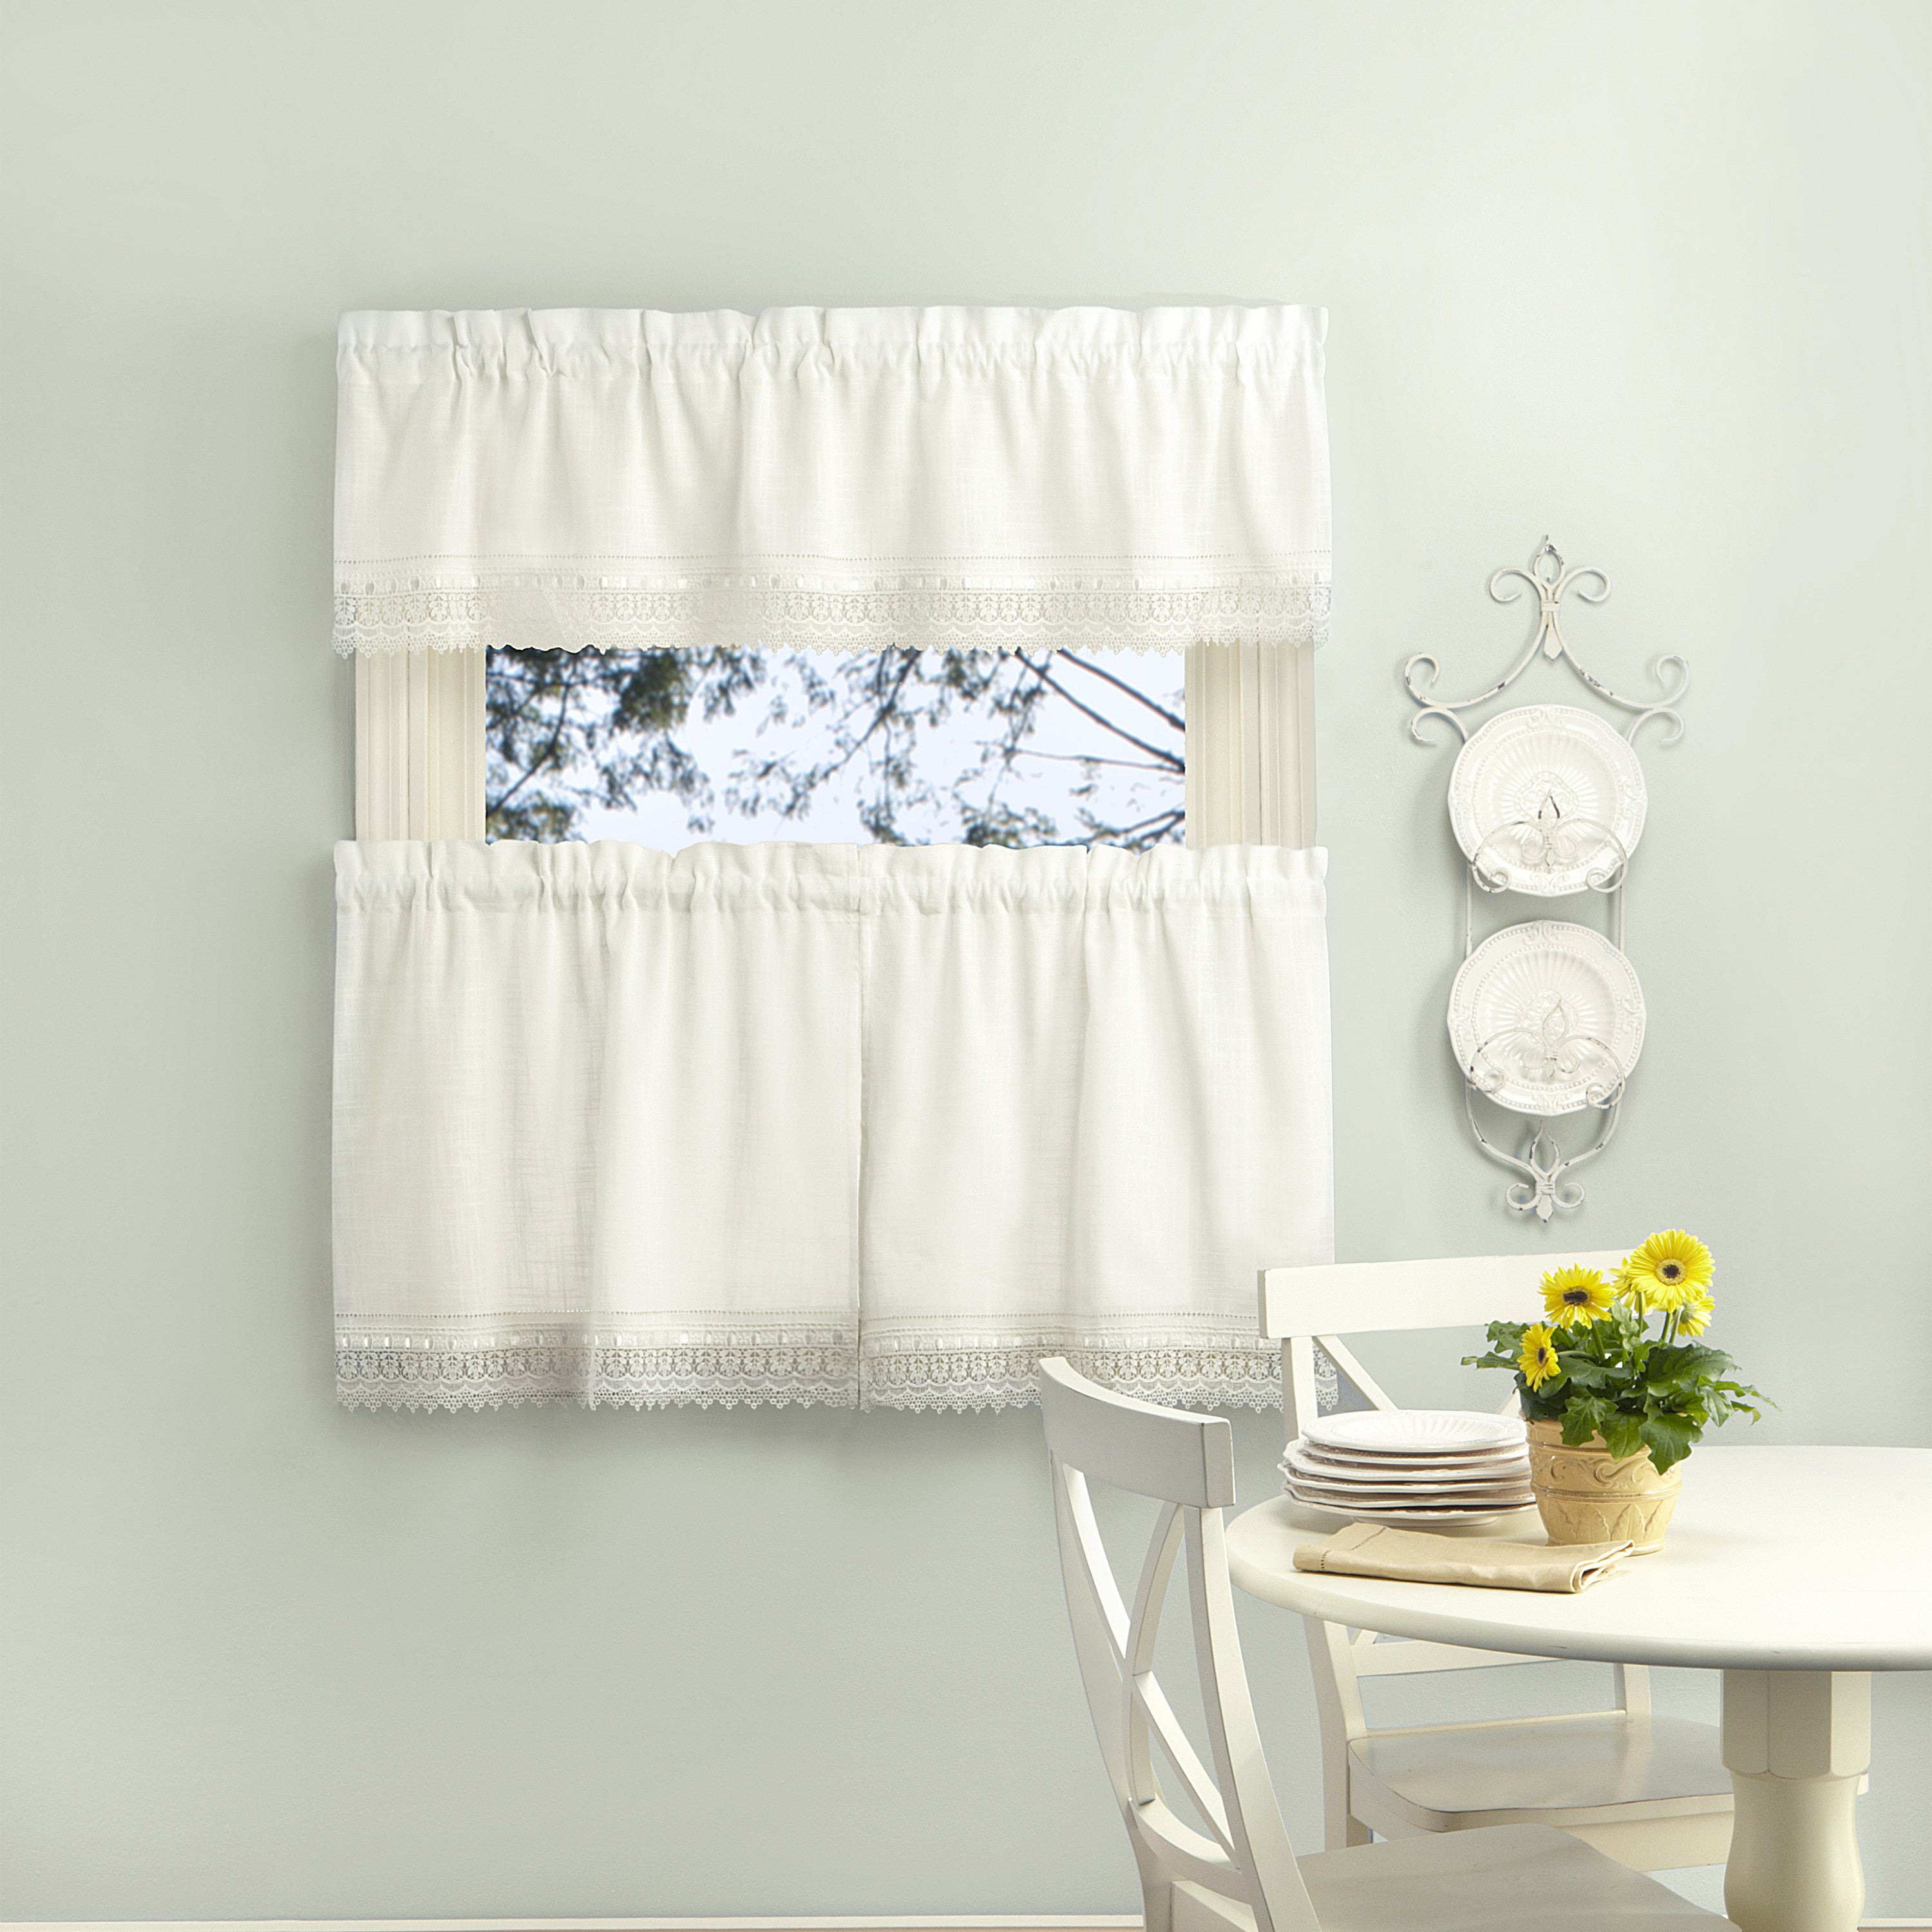 amber door valance bedroom drapes swag drape ivory curtain beige pleats sheer curtains eyelets majesty index with creamy pelmet blockout european